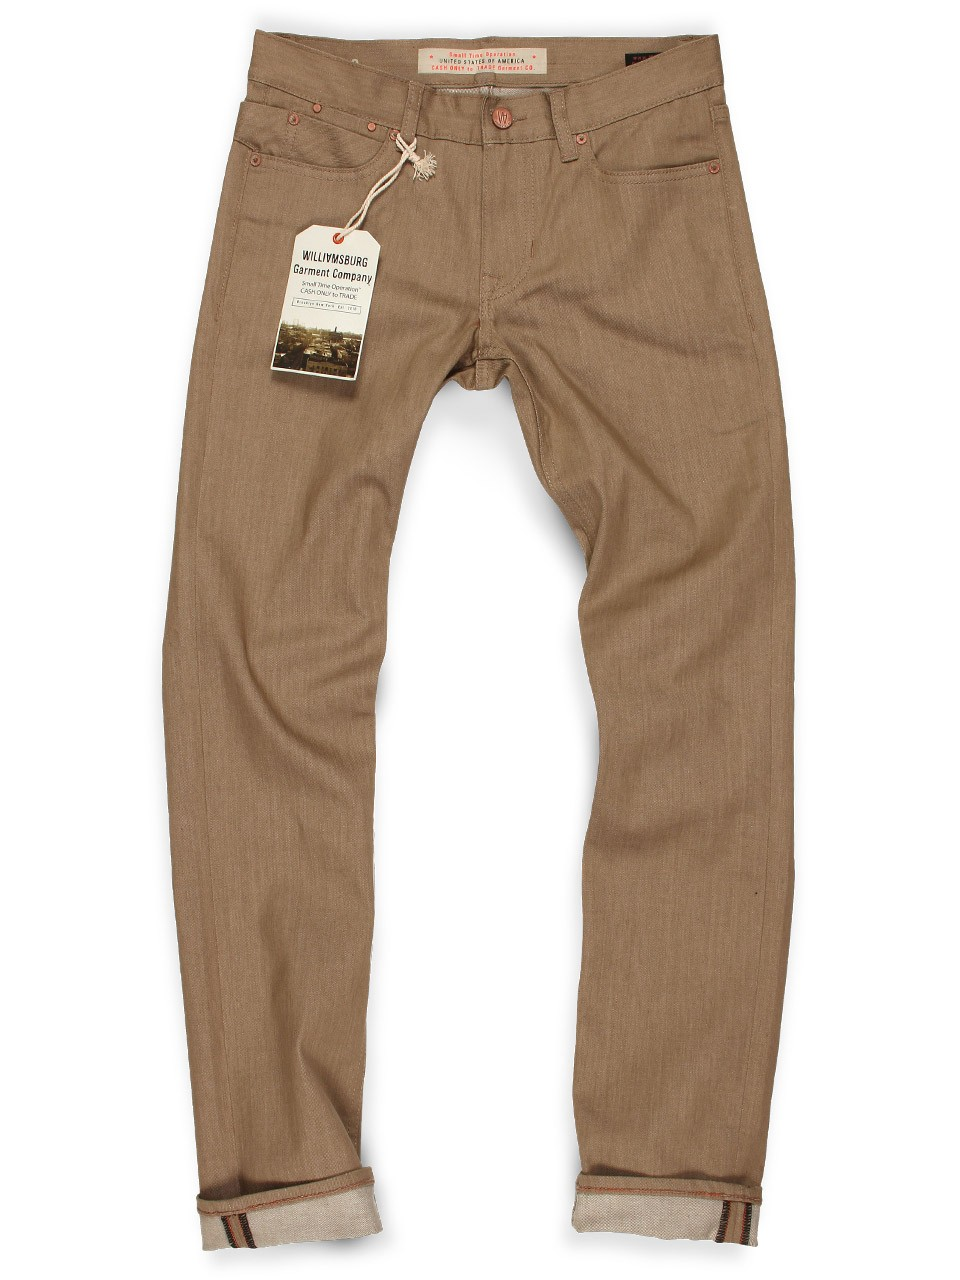 Raw Tan Skinny Jeans - SOUTH 4th STREET